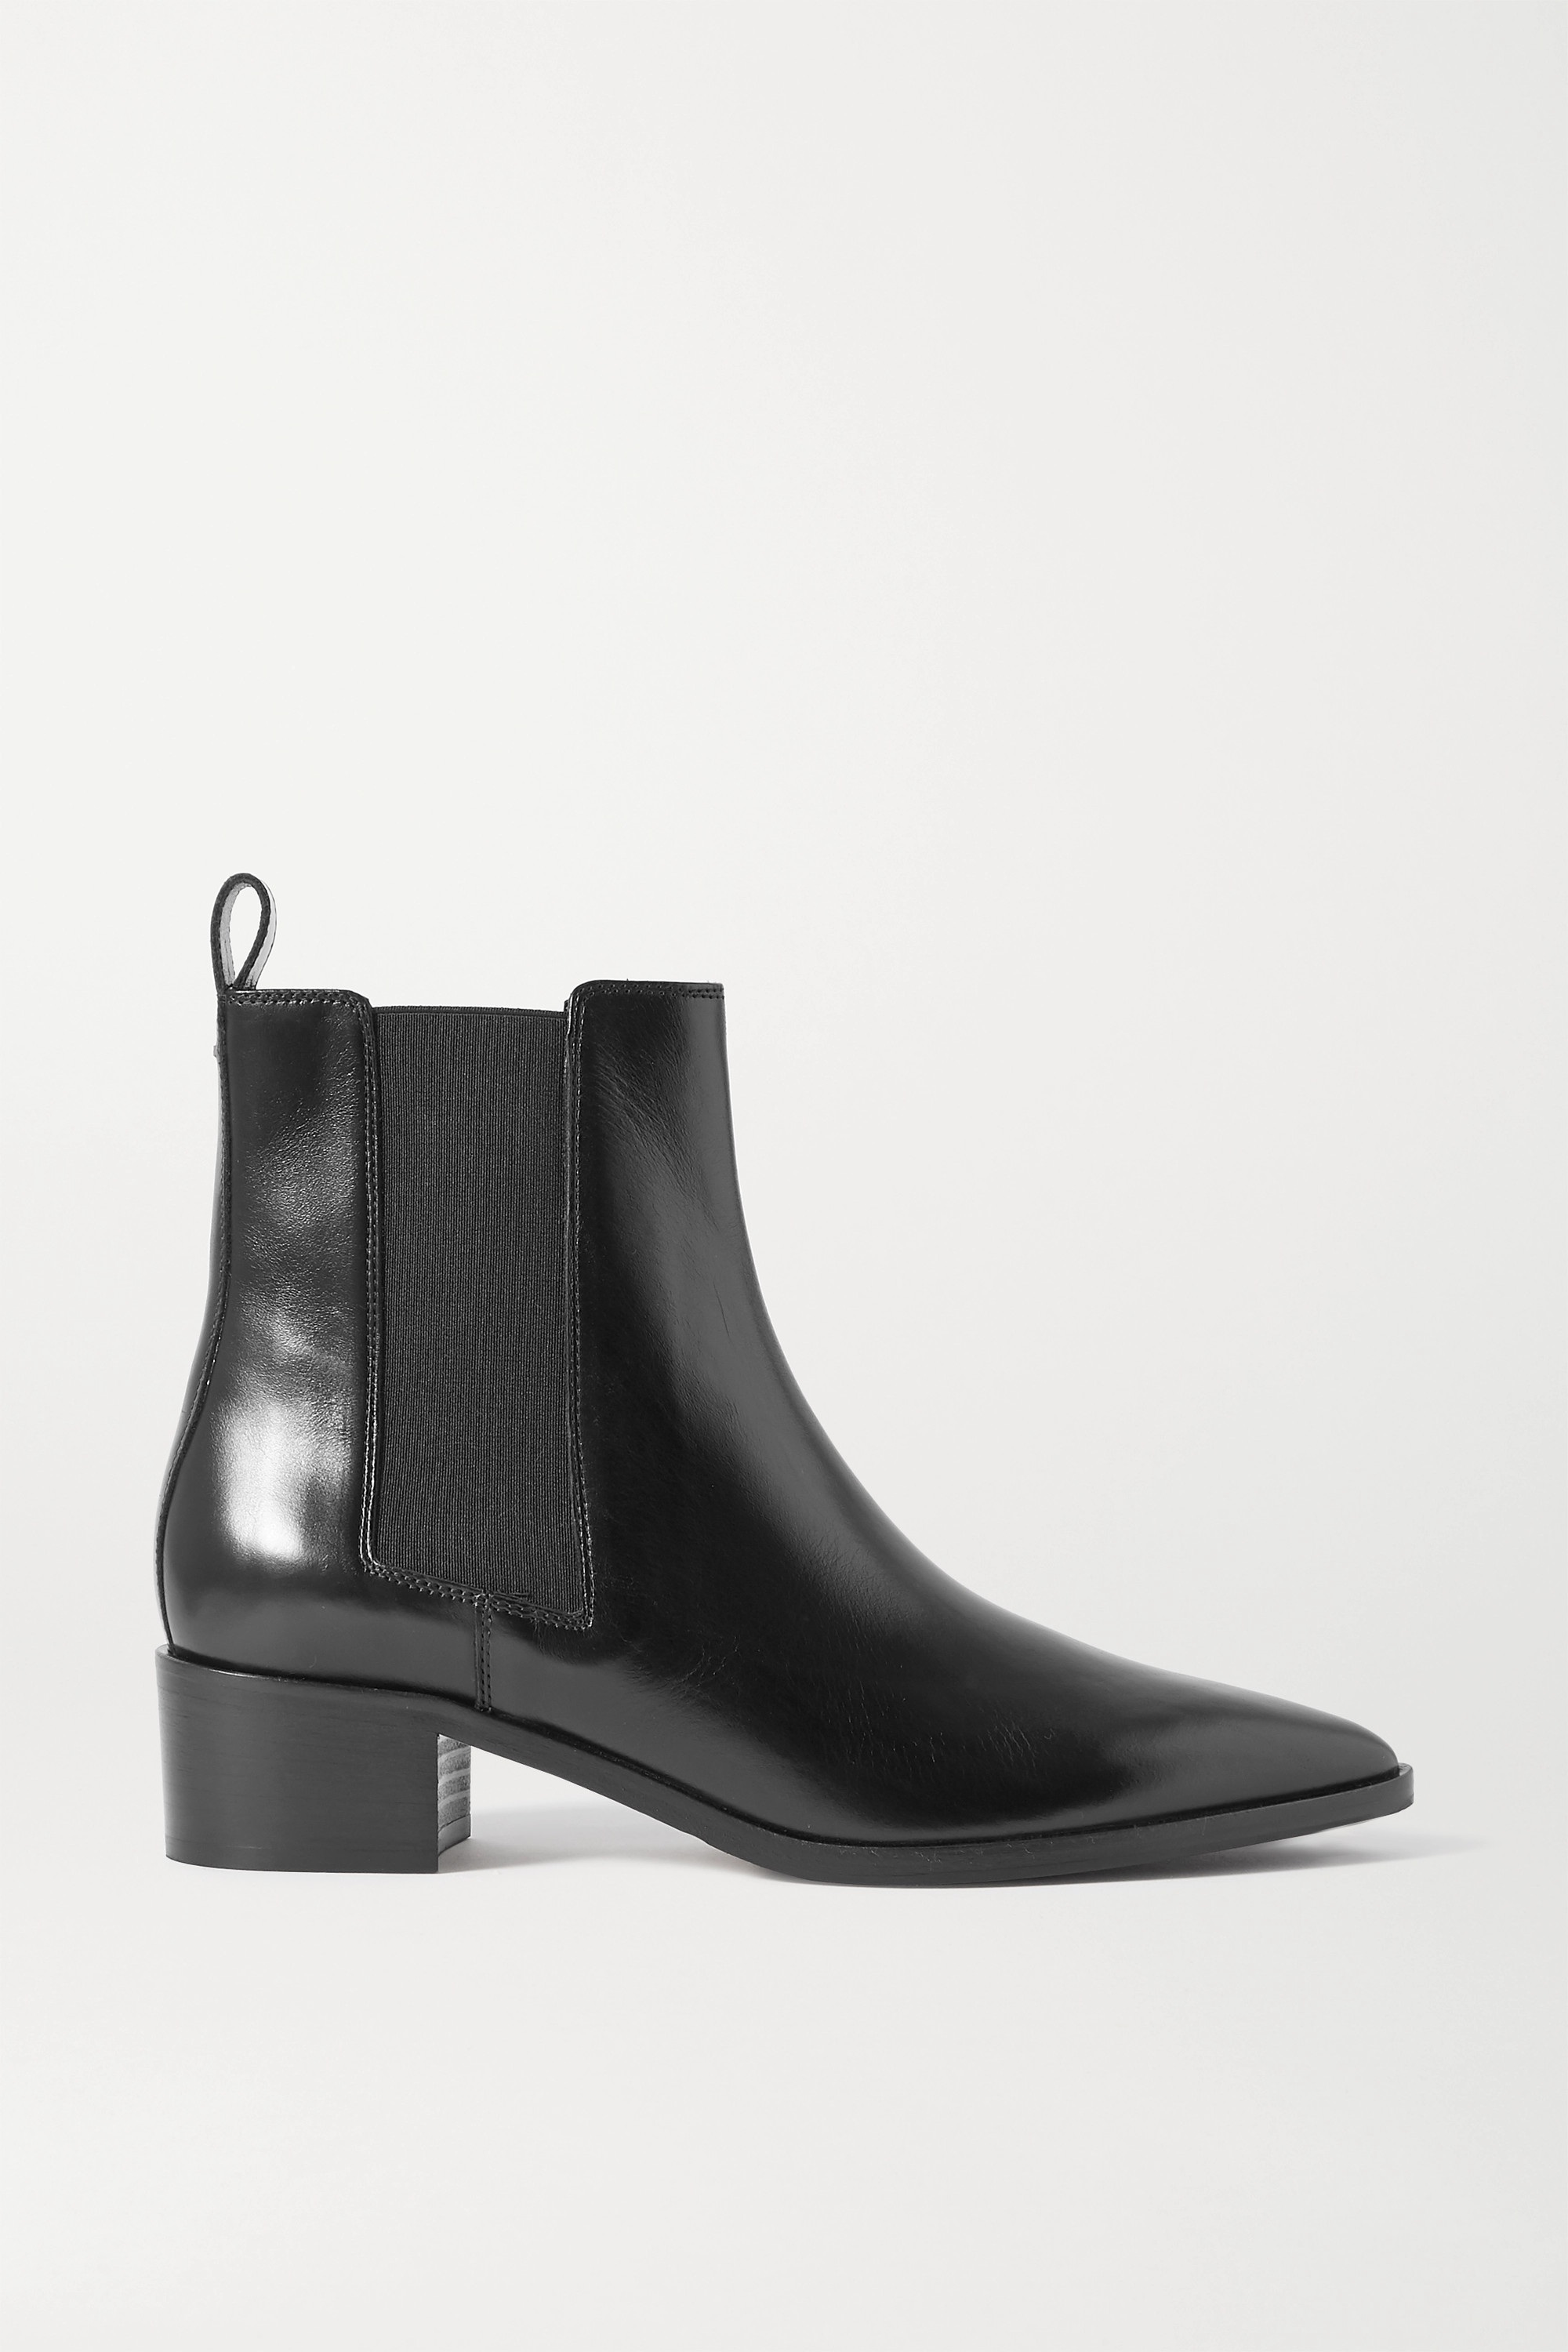 aeyde Lou leather Chelsea boots